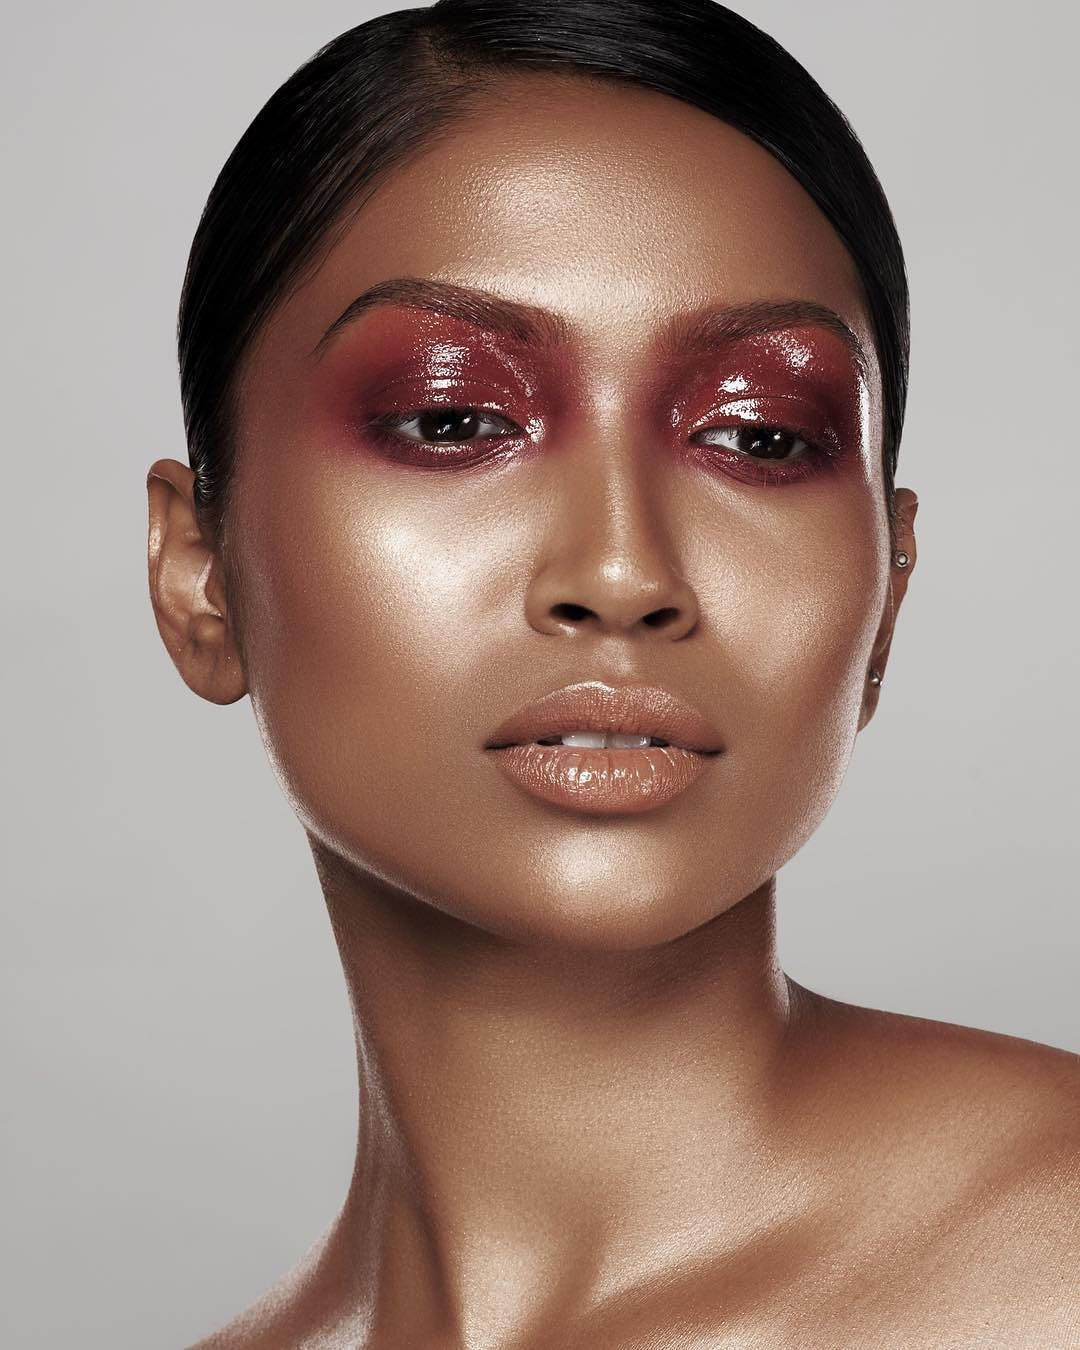 Glossy lids and glowing skin. x